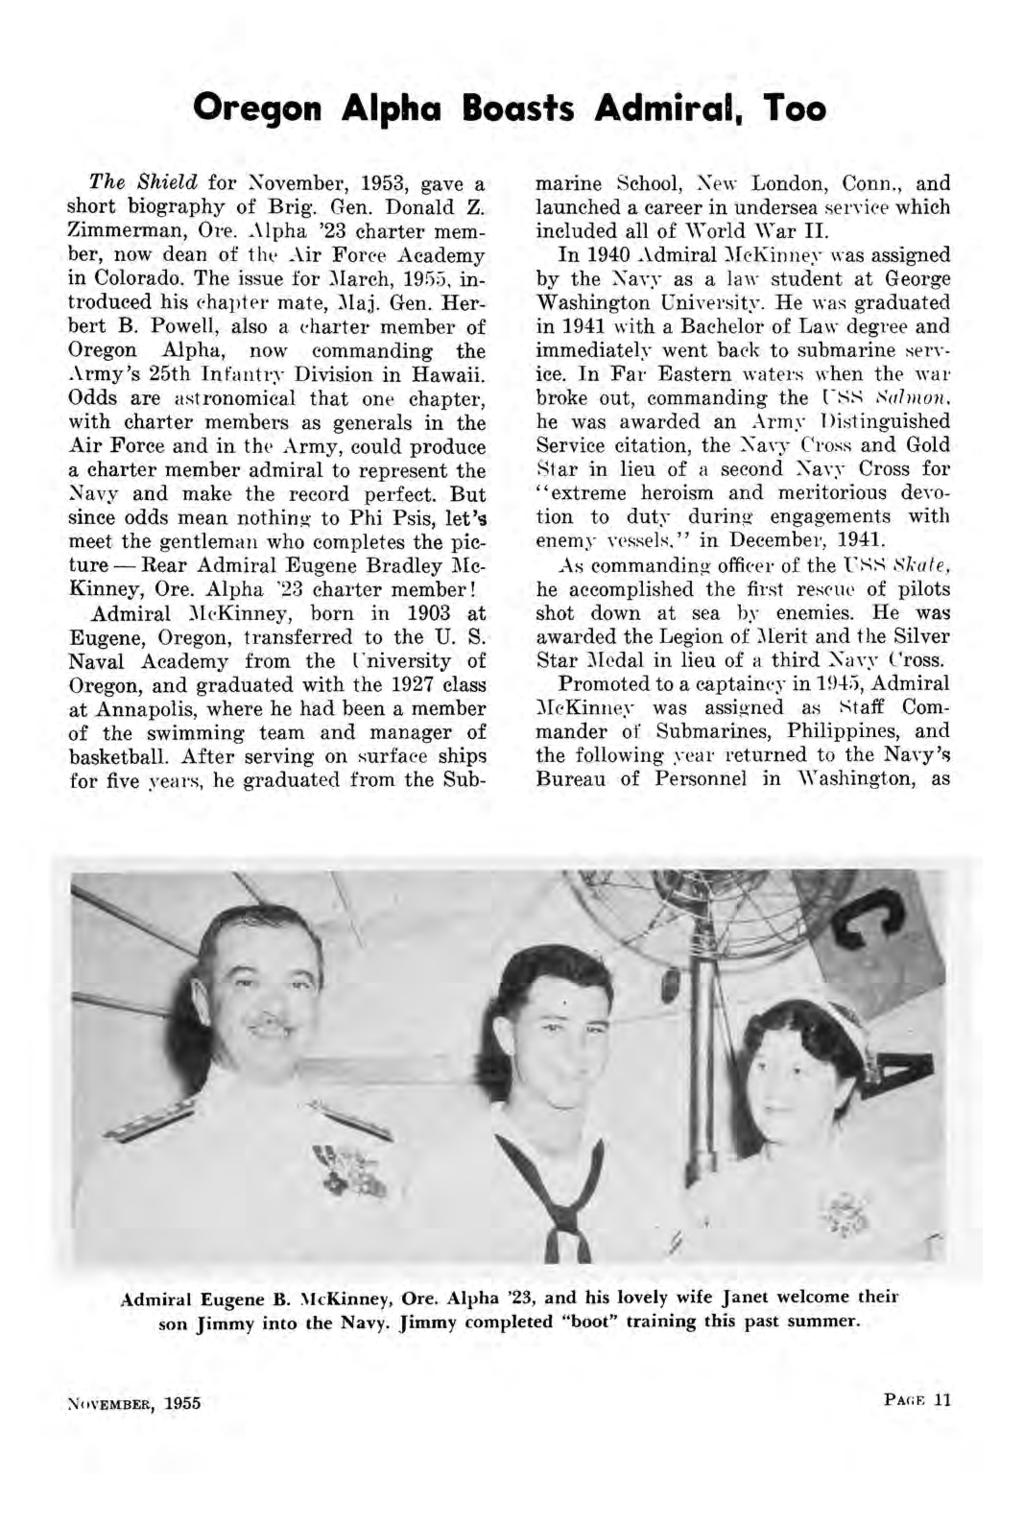 Oregon Alpha Boasts Admiral, Too The Shield for November, 1953, gave a short biography of Brig. Gen. Donald Z. Zimmerman, Ore. Alpha '23 charter member, now dean of the Air Force Academy in Colorado.